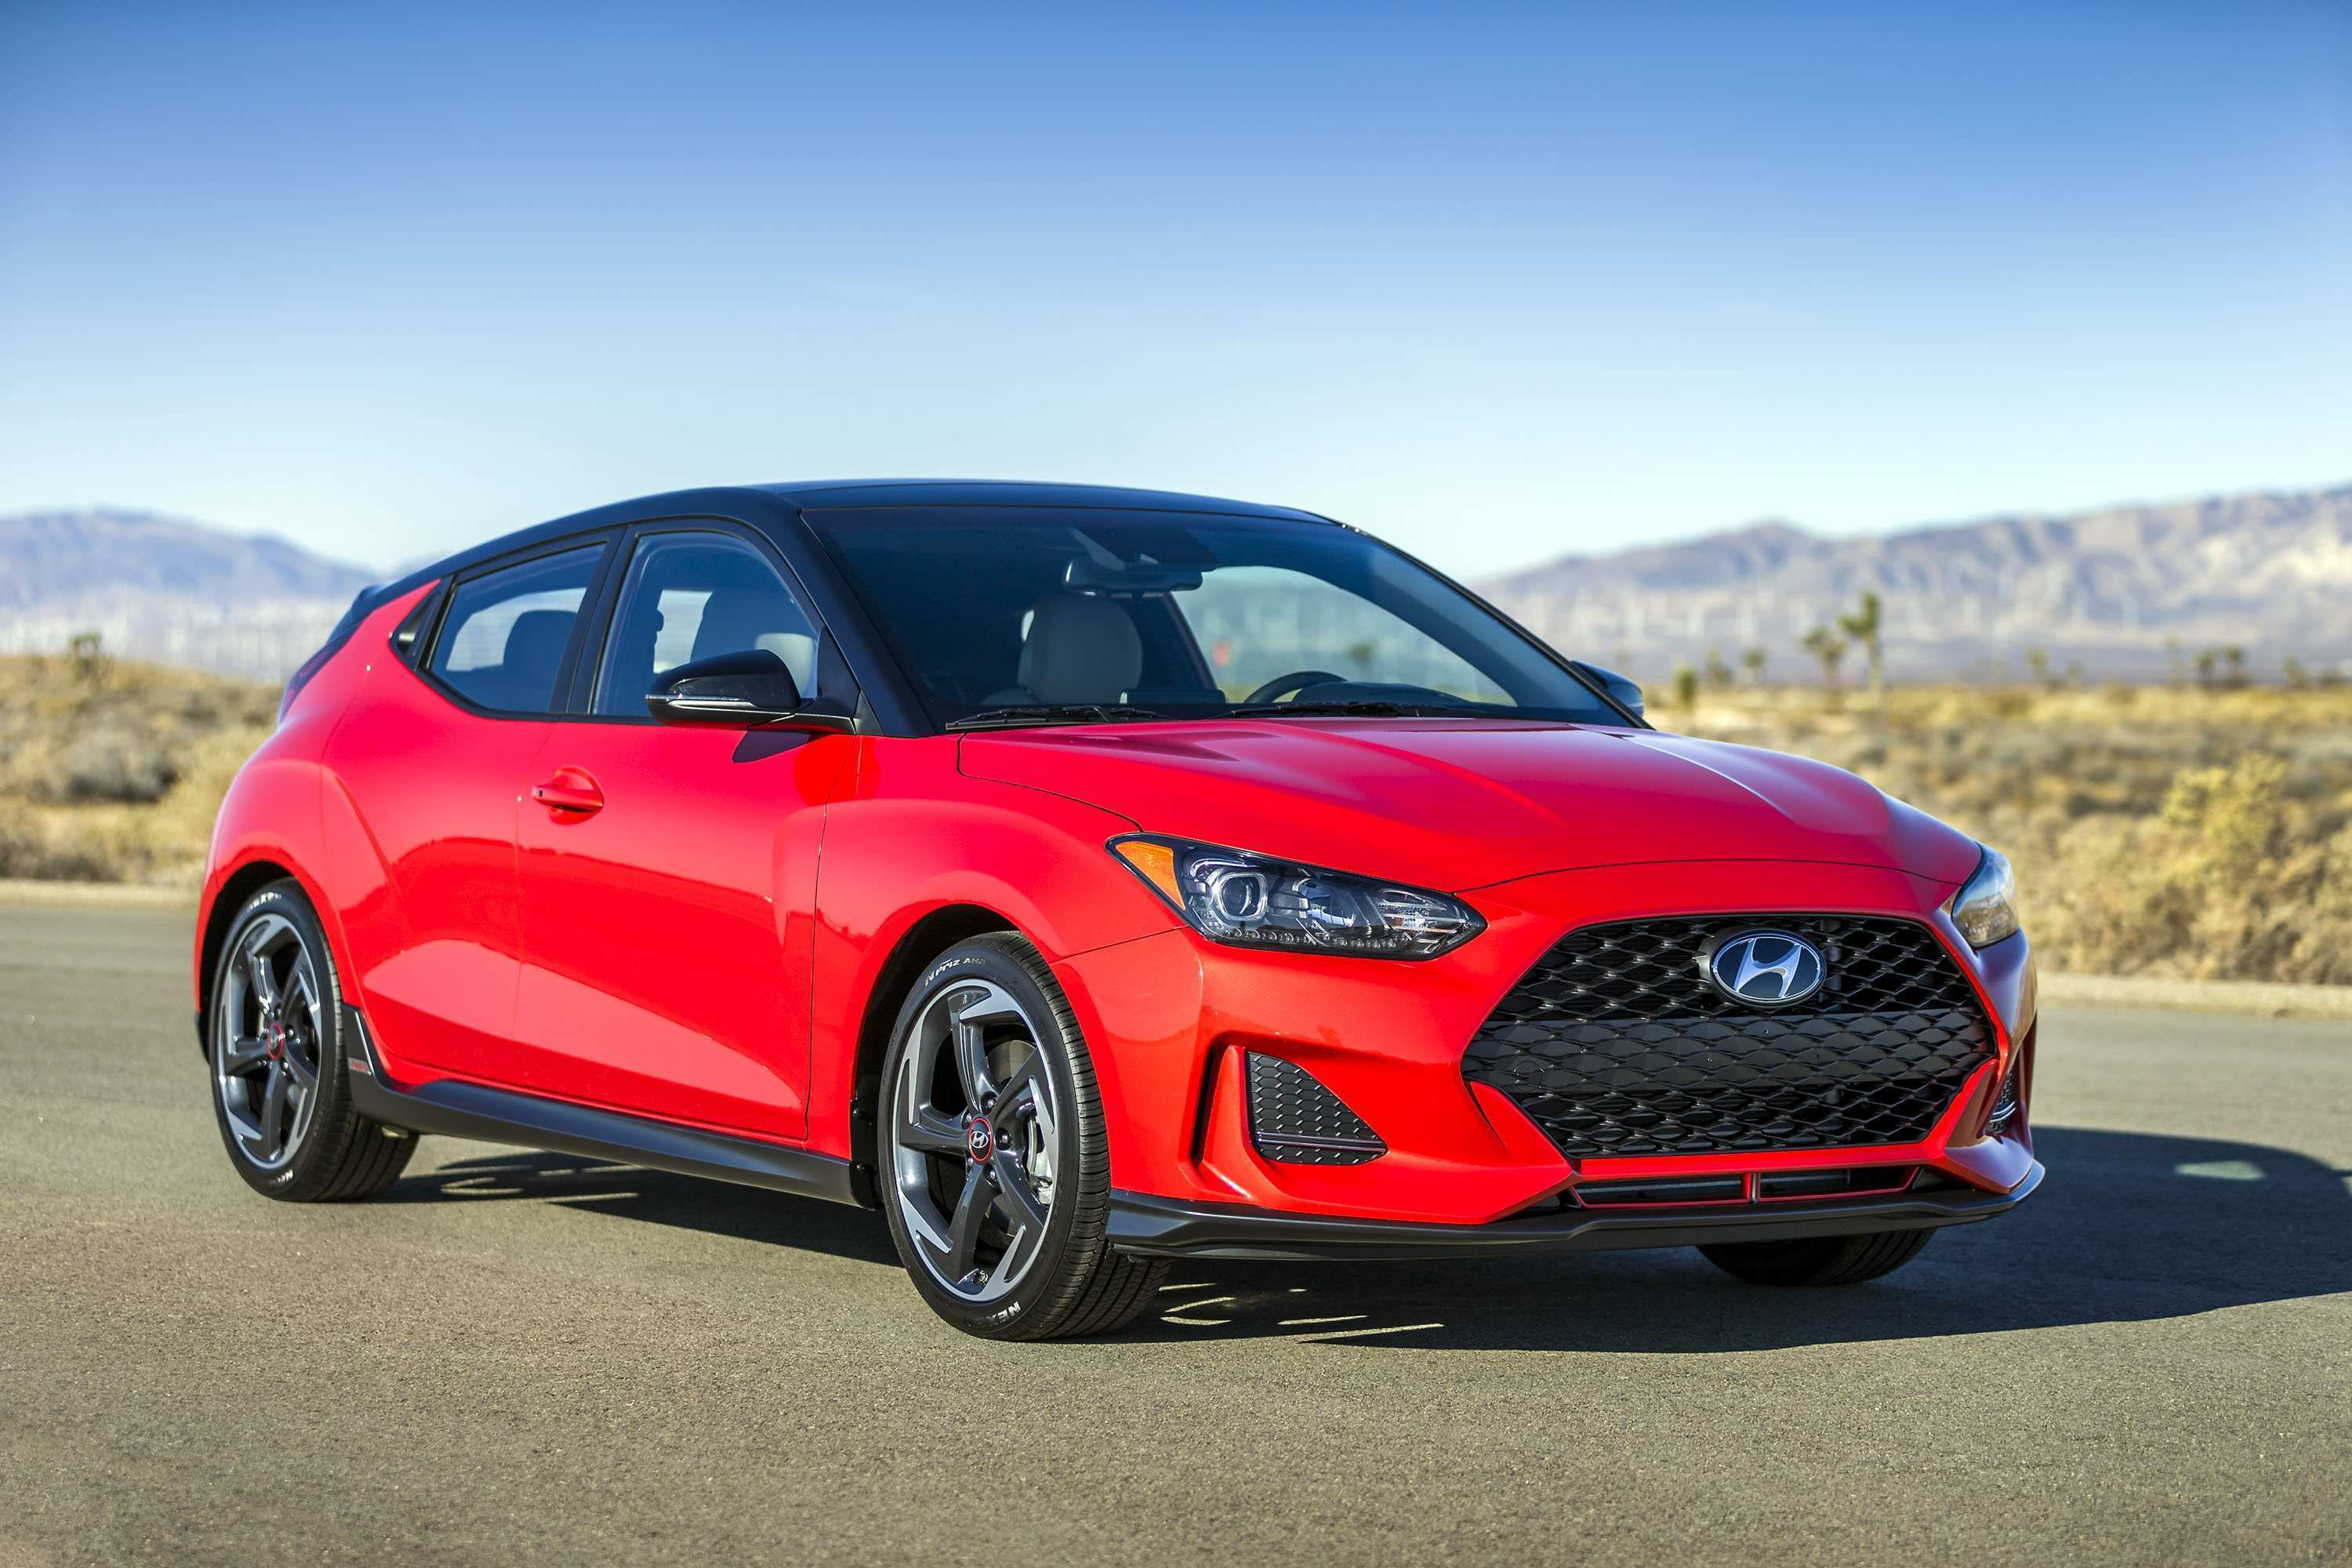 85 The 2020 Hyundai Veloster Turbo Picture with 2020 Hyundai Veloster Turbo